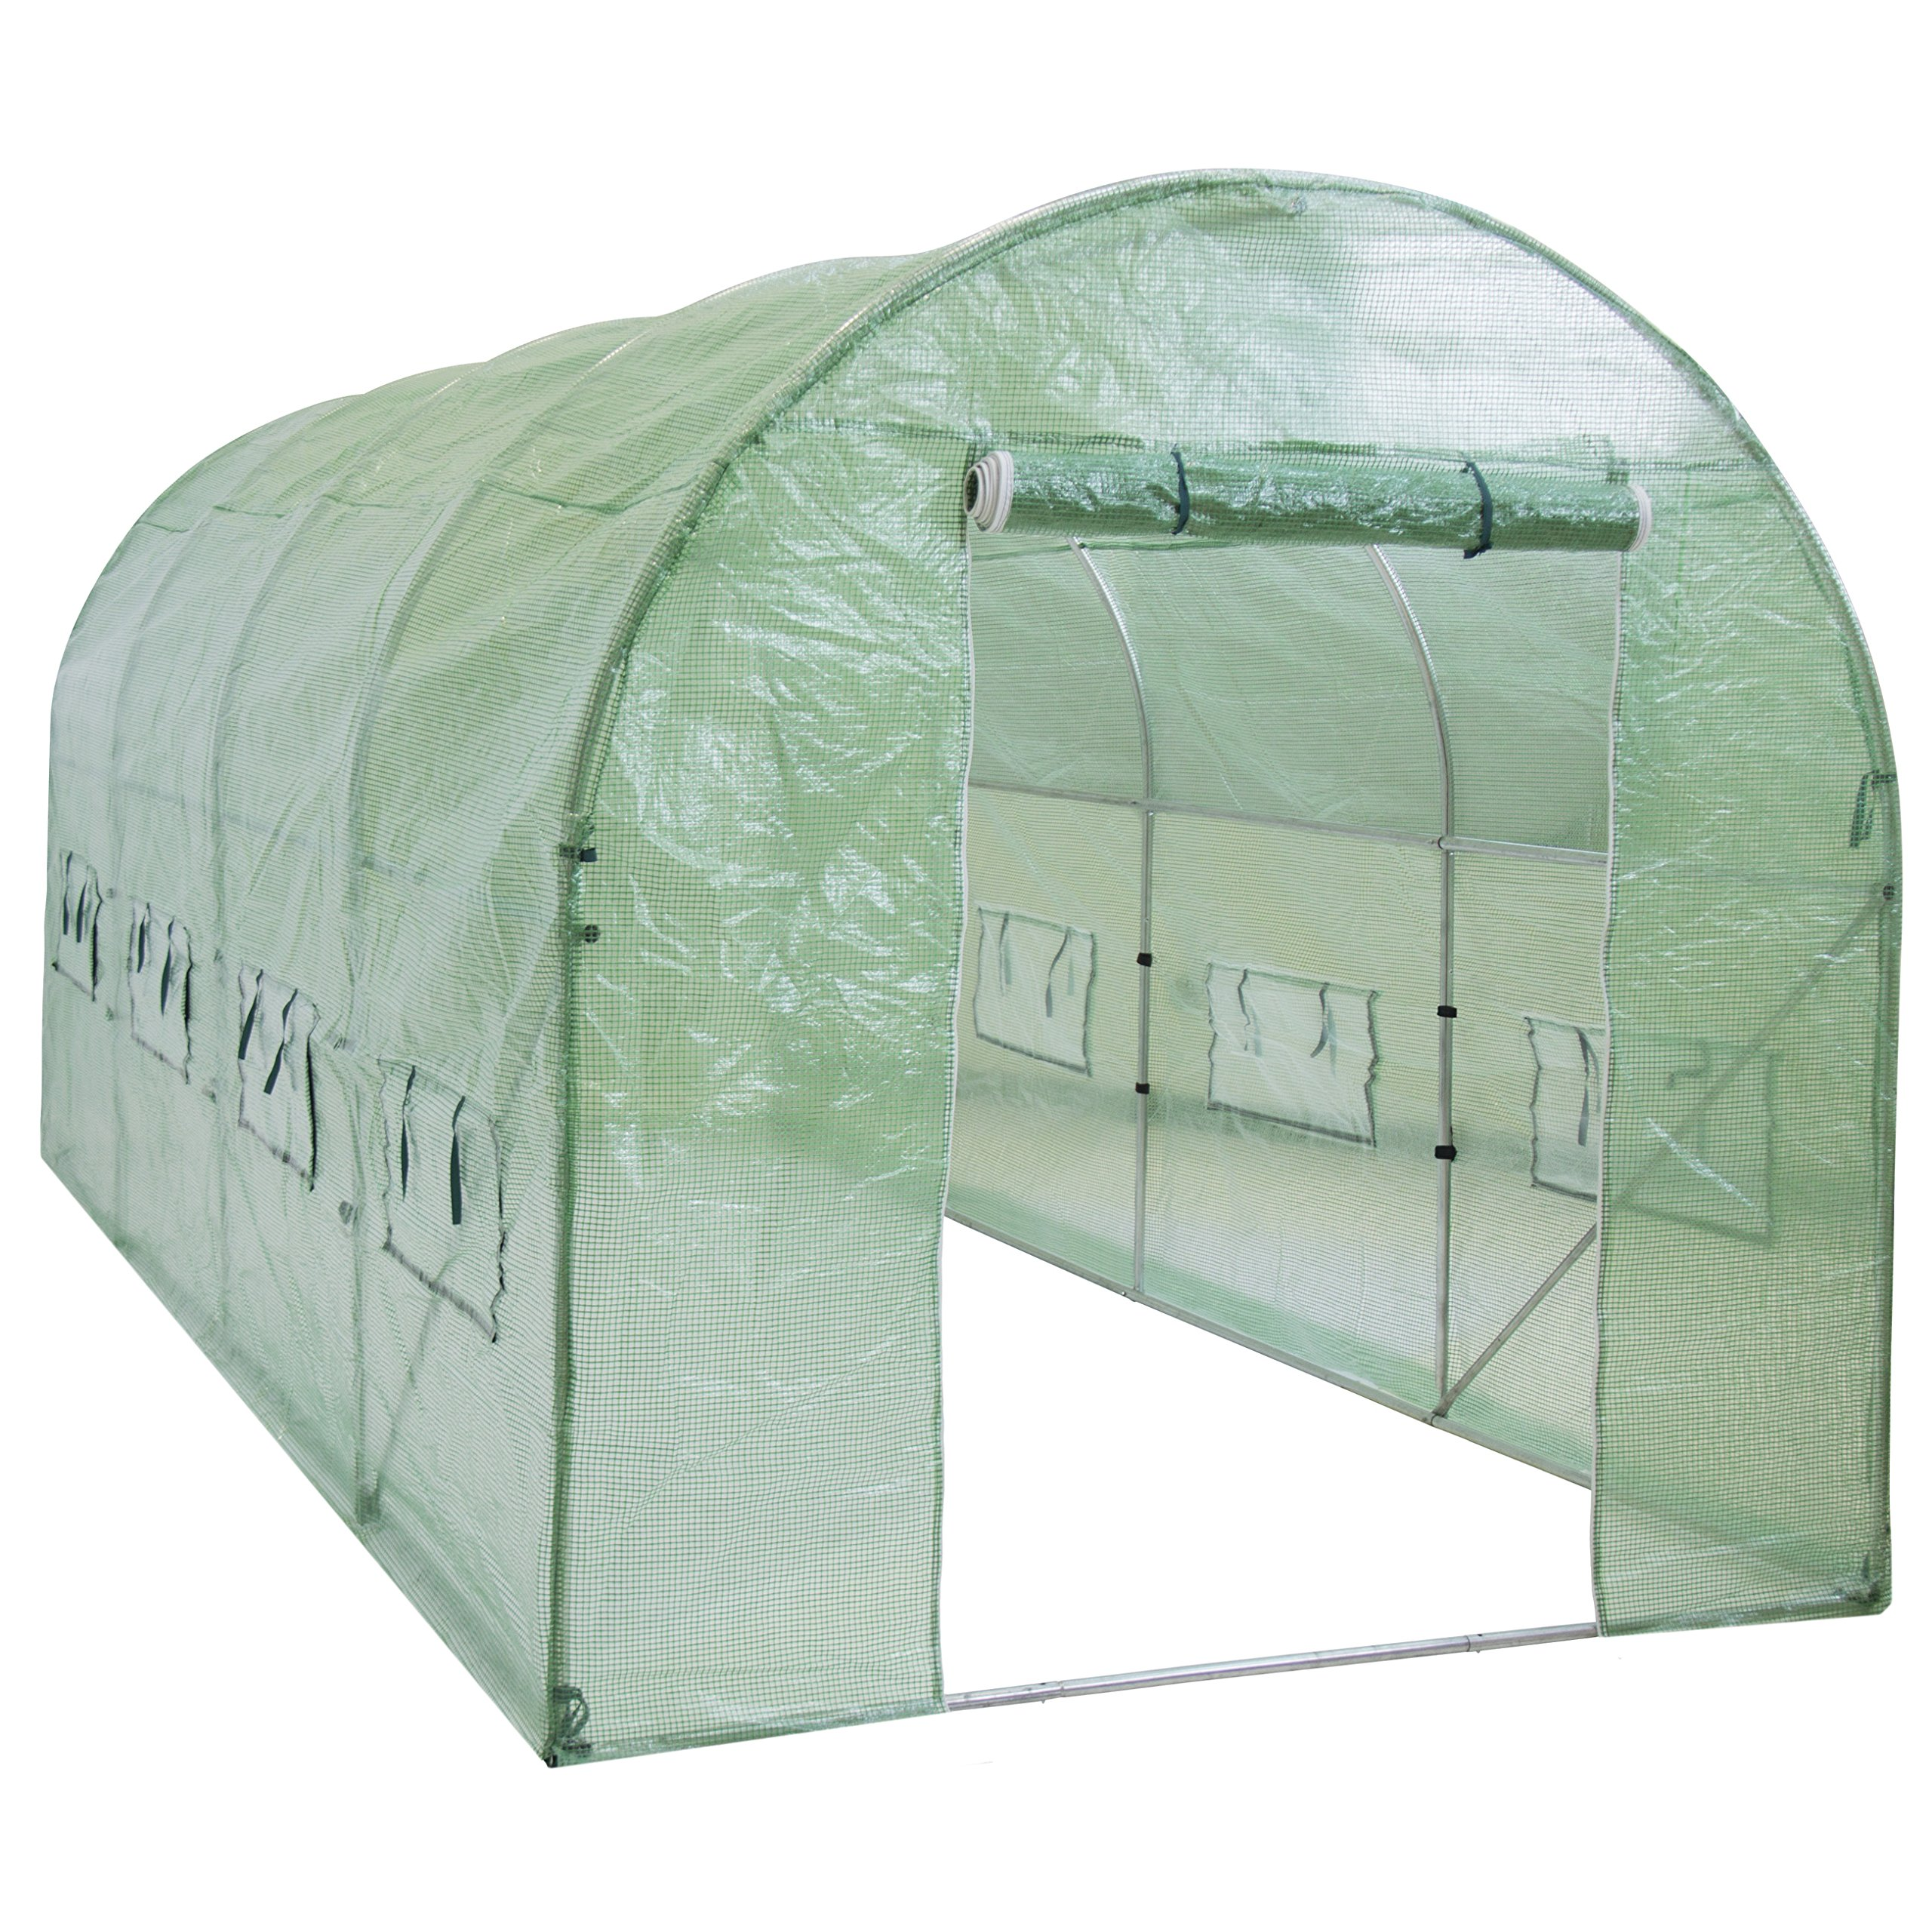 Best Choice Products SKY1917 Walk-In Tunnel Green House Garden Plant, 15' x 7' x 7' by Best Choice Products